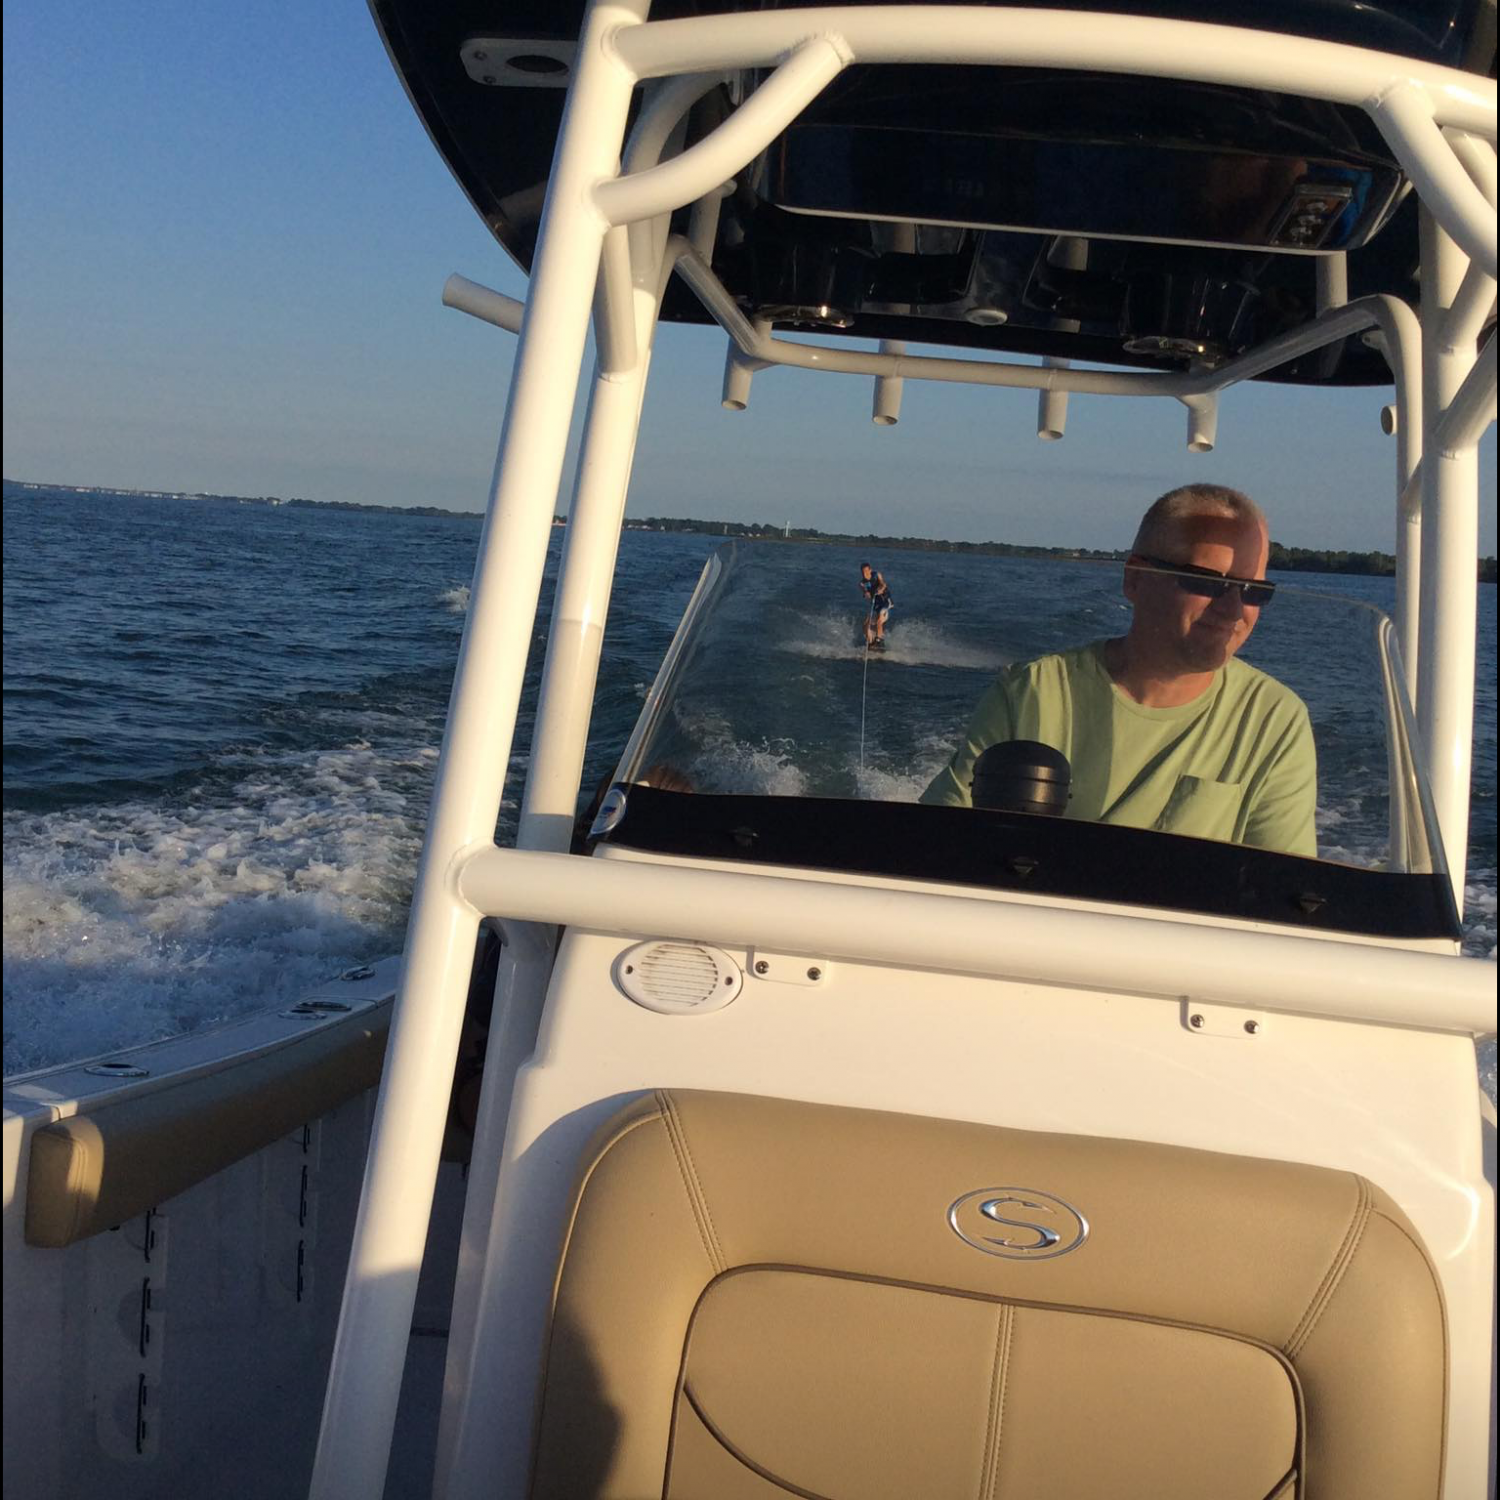 "Title: Putting The ""sport"" In Sportsman - On board their Sportsman Heritage 231 Center Console - Location: Perrysburg, Ohio. Participating in the Photo Contest #SportsmanAugust2017"